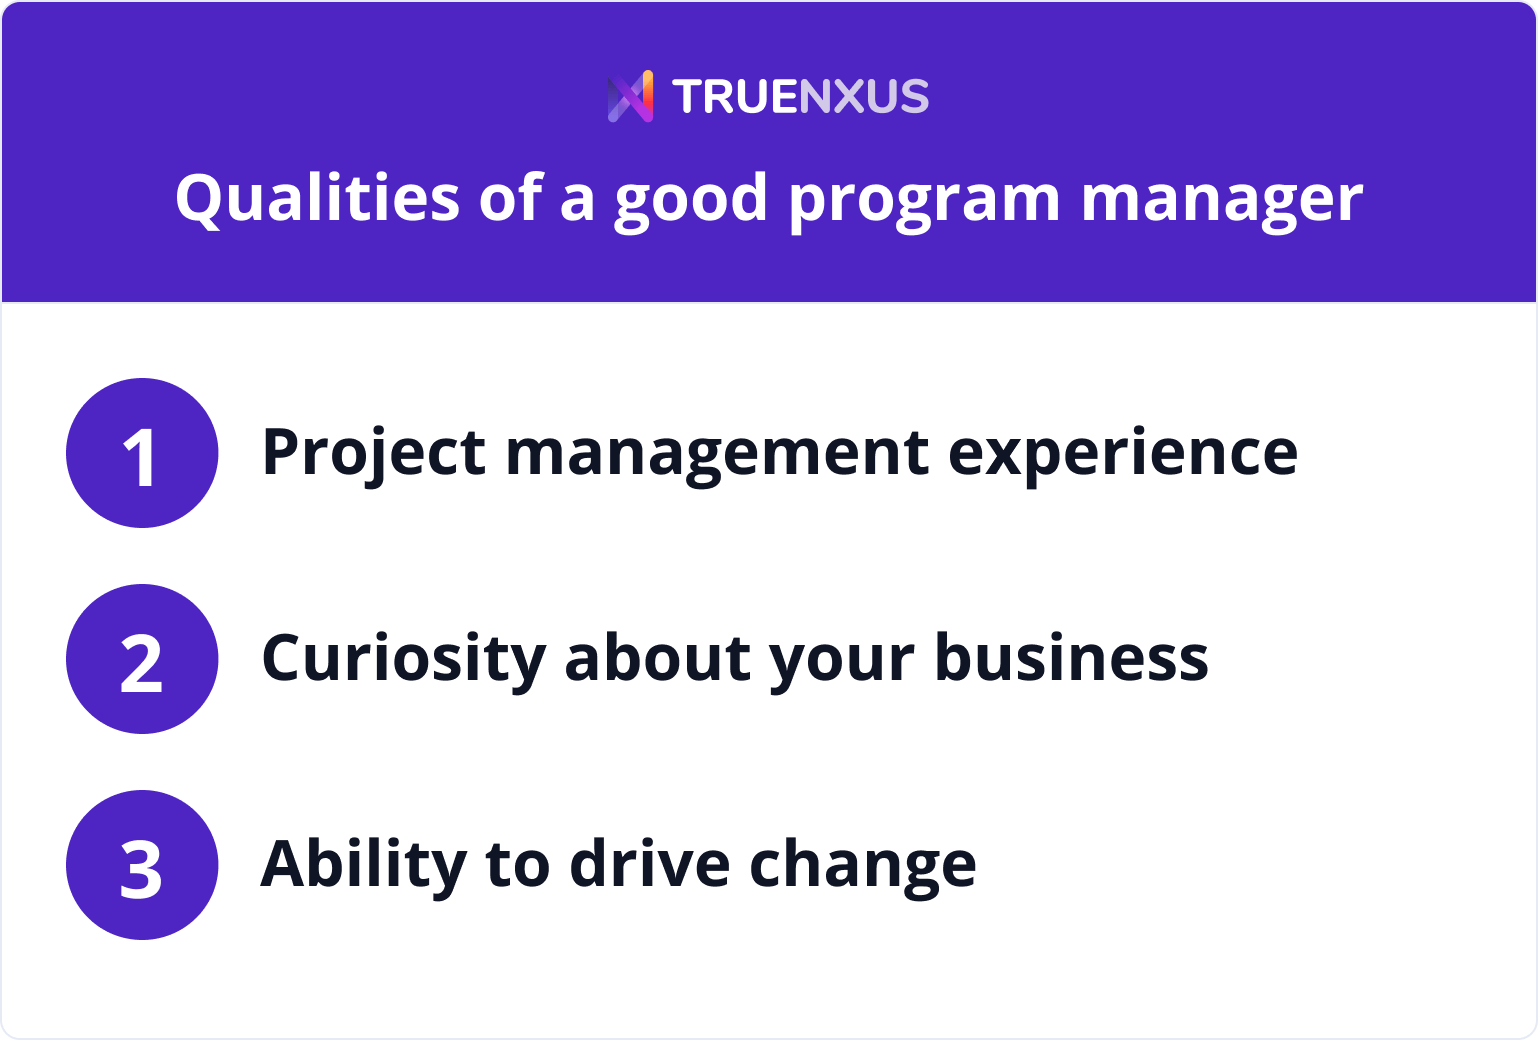 Qualities of a good program manager infographic